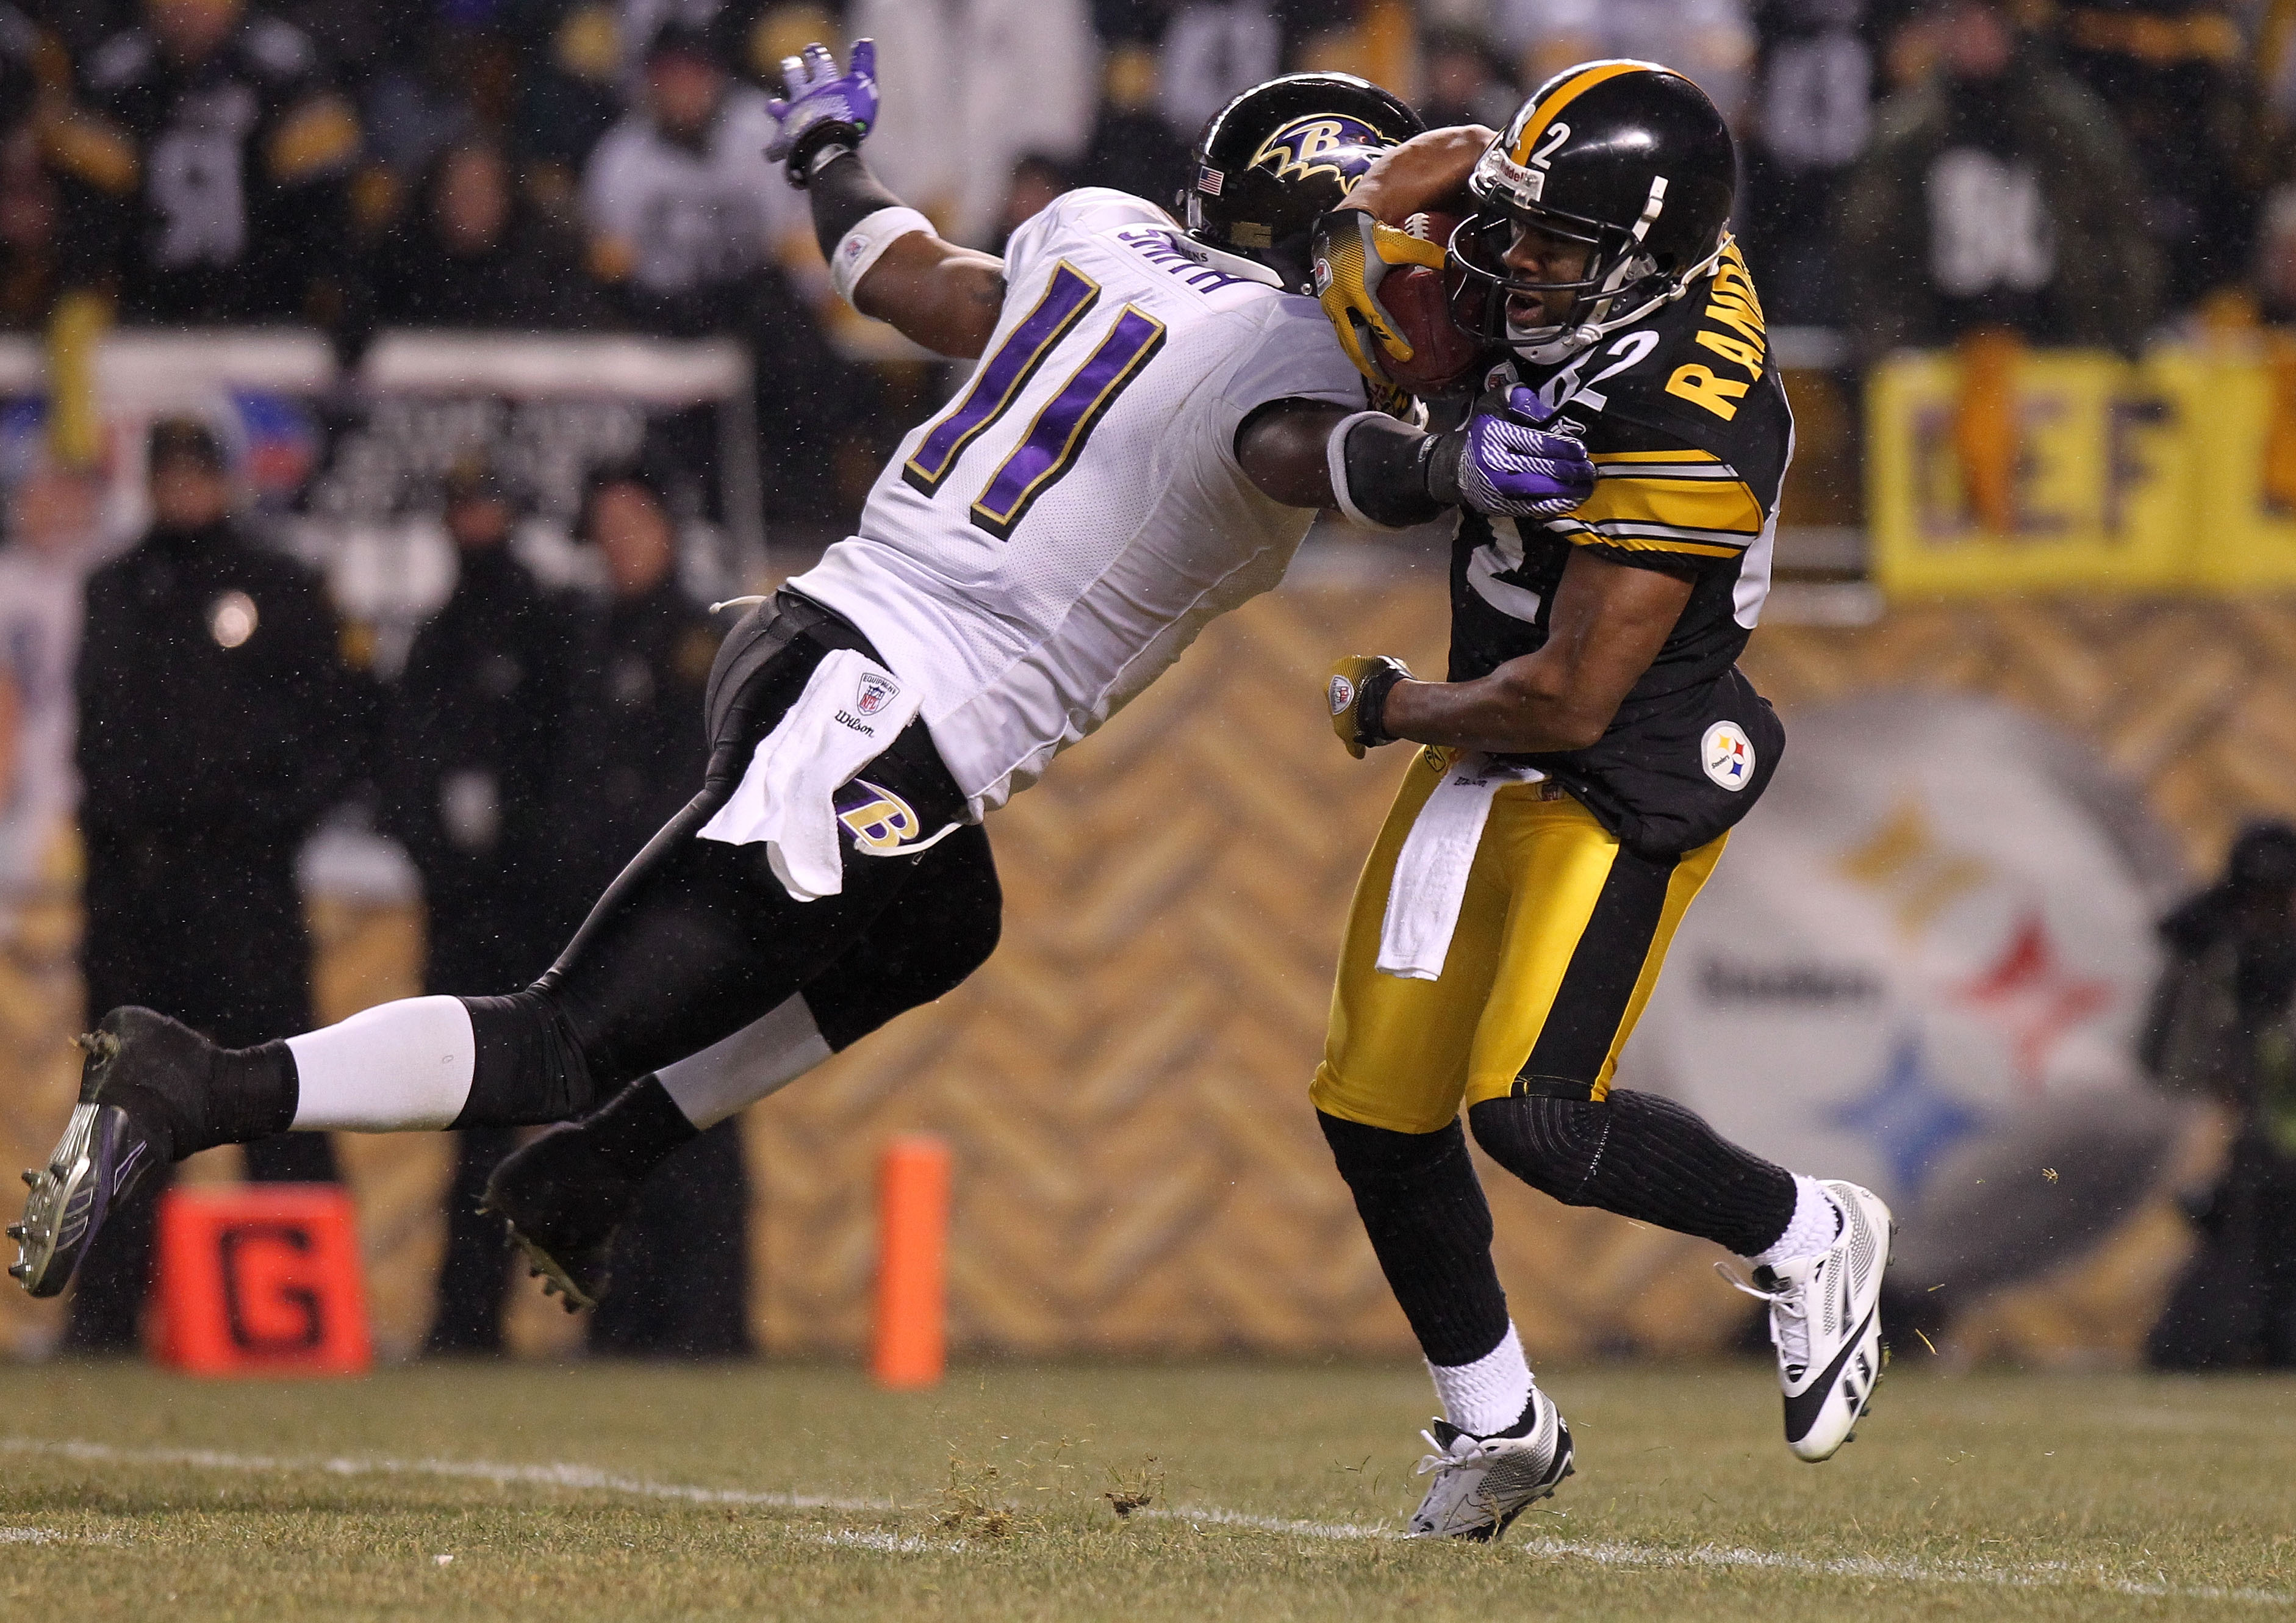 PITTSBURGH, PA - JANUARY 15:  Marcus Smtih #11 of the Baltimore Ravens tackles Antwaan Randle El #82 of the Pittsburgh Steelers during a kick return in the AFC Divisional Playoff Game at Heinz Field on January 15, 2011 in Pittsburgh, Pennsylvania.  (Photo